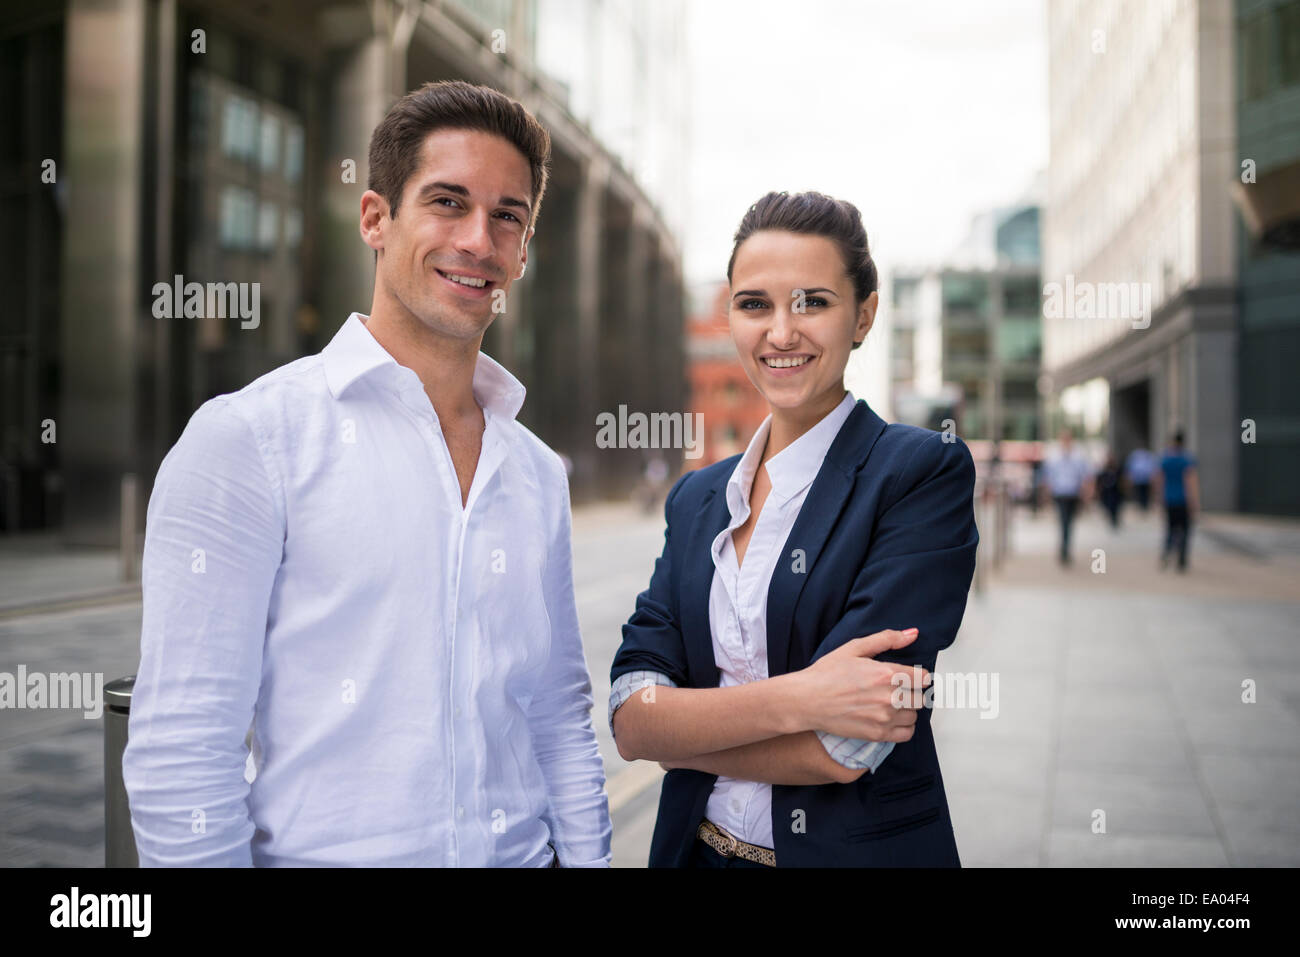 Portrait of young business partners on street, London, UK - Stock Image